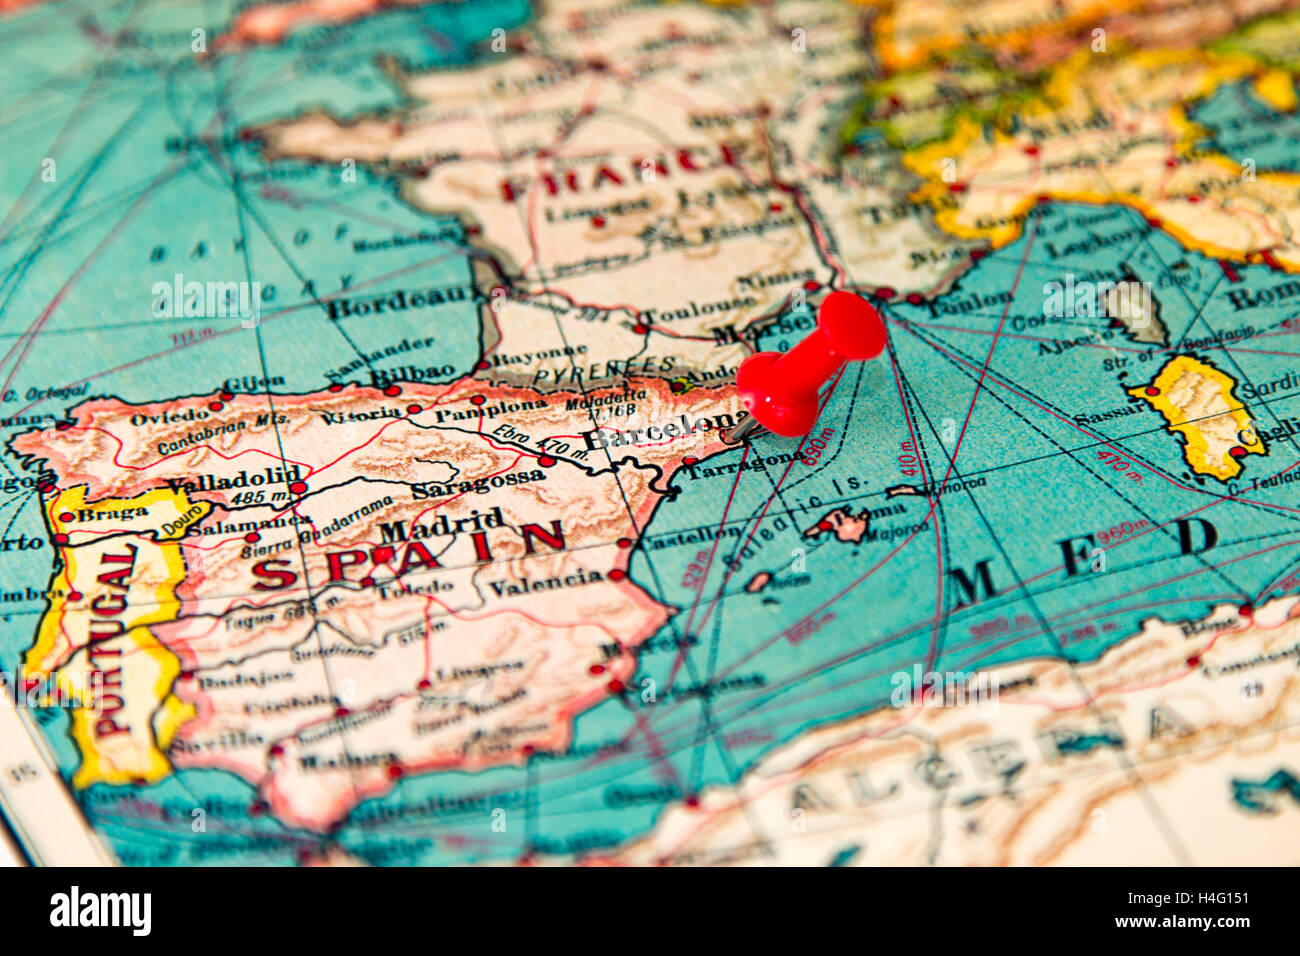 Barcelona spain pinned on vintage map of europe stock photo royalty free image 123283357 alamy - Mobles vintage barcelona ...